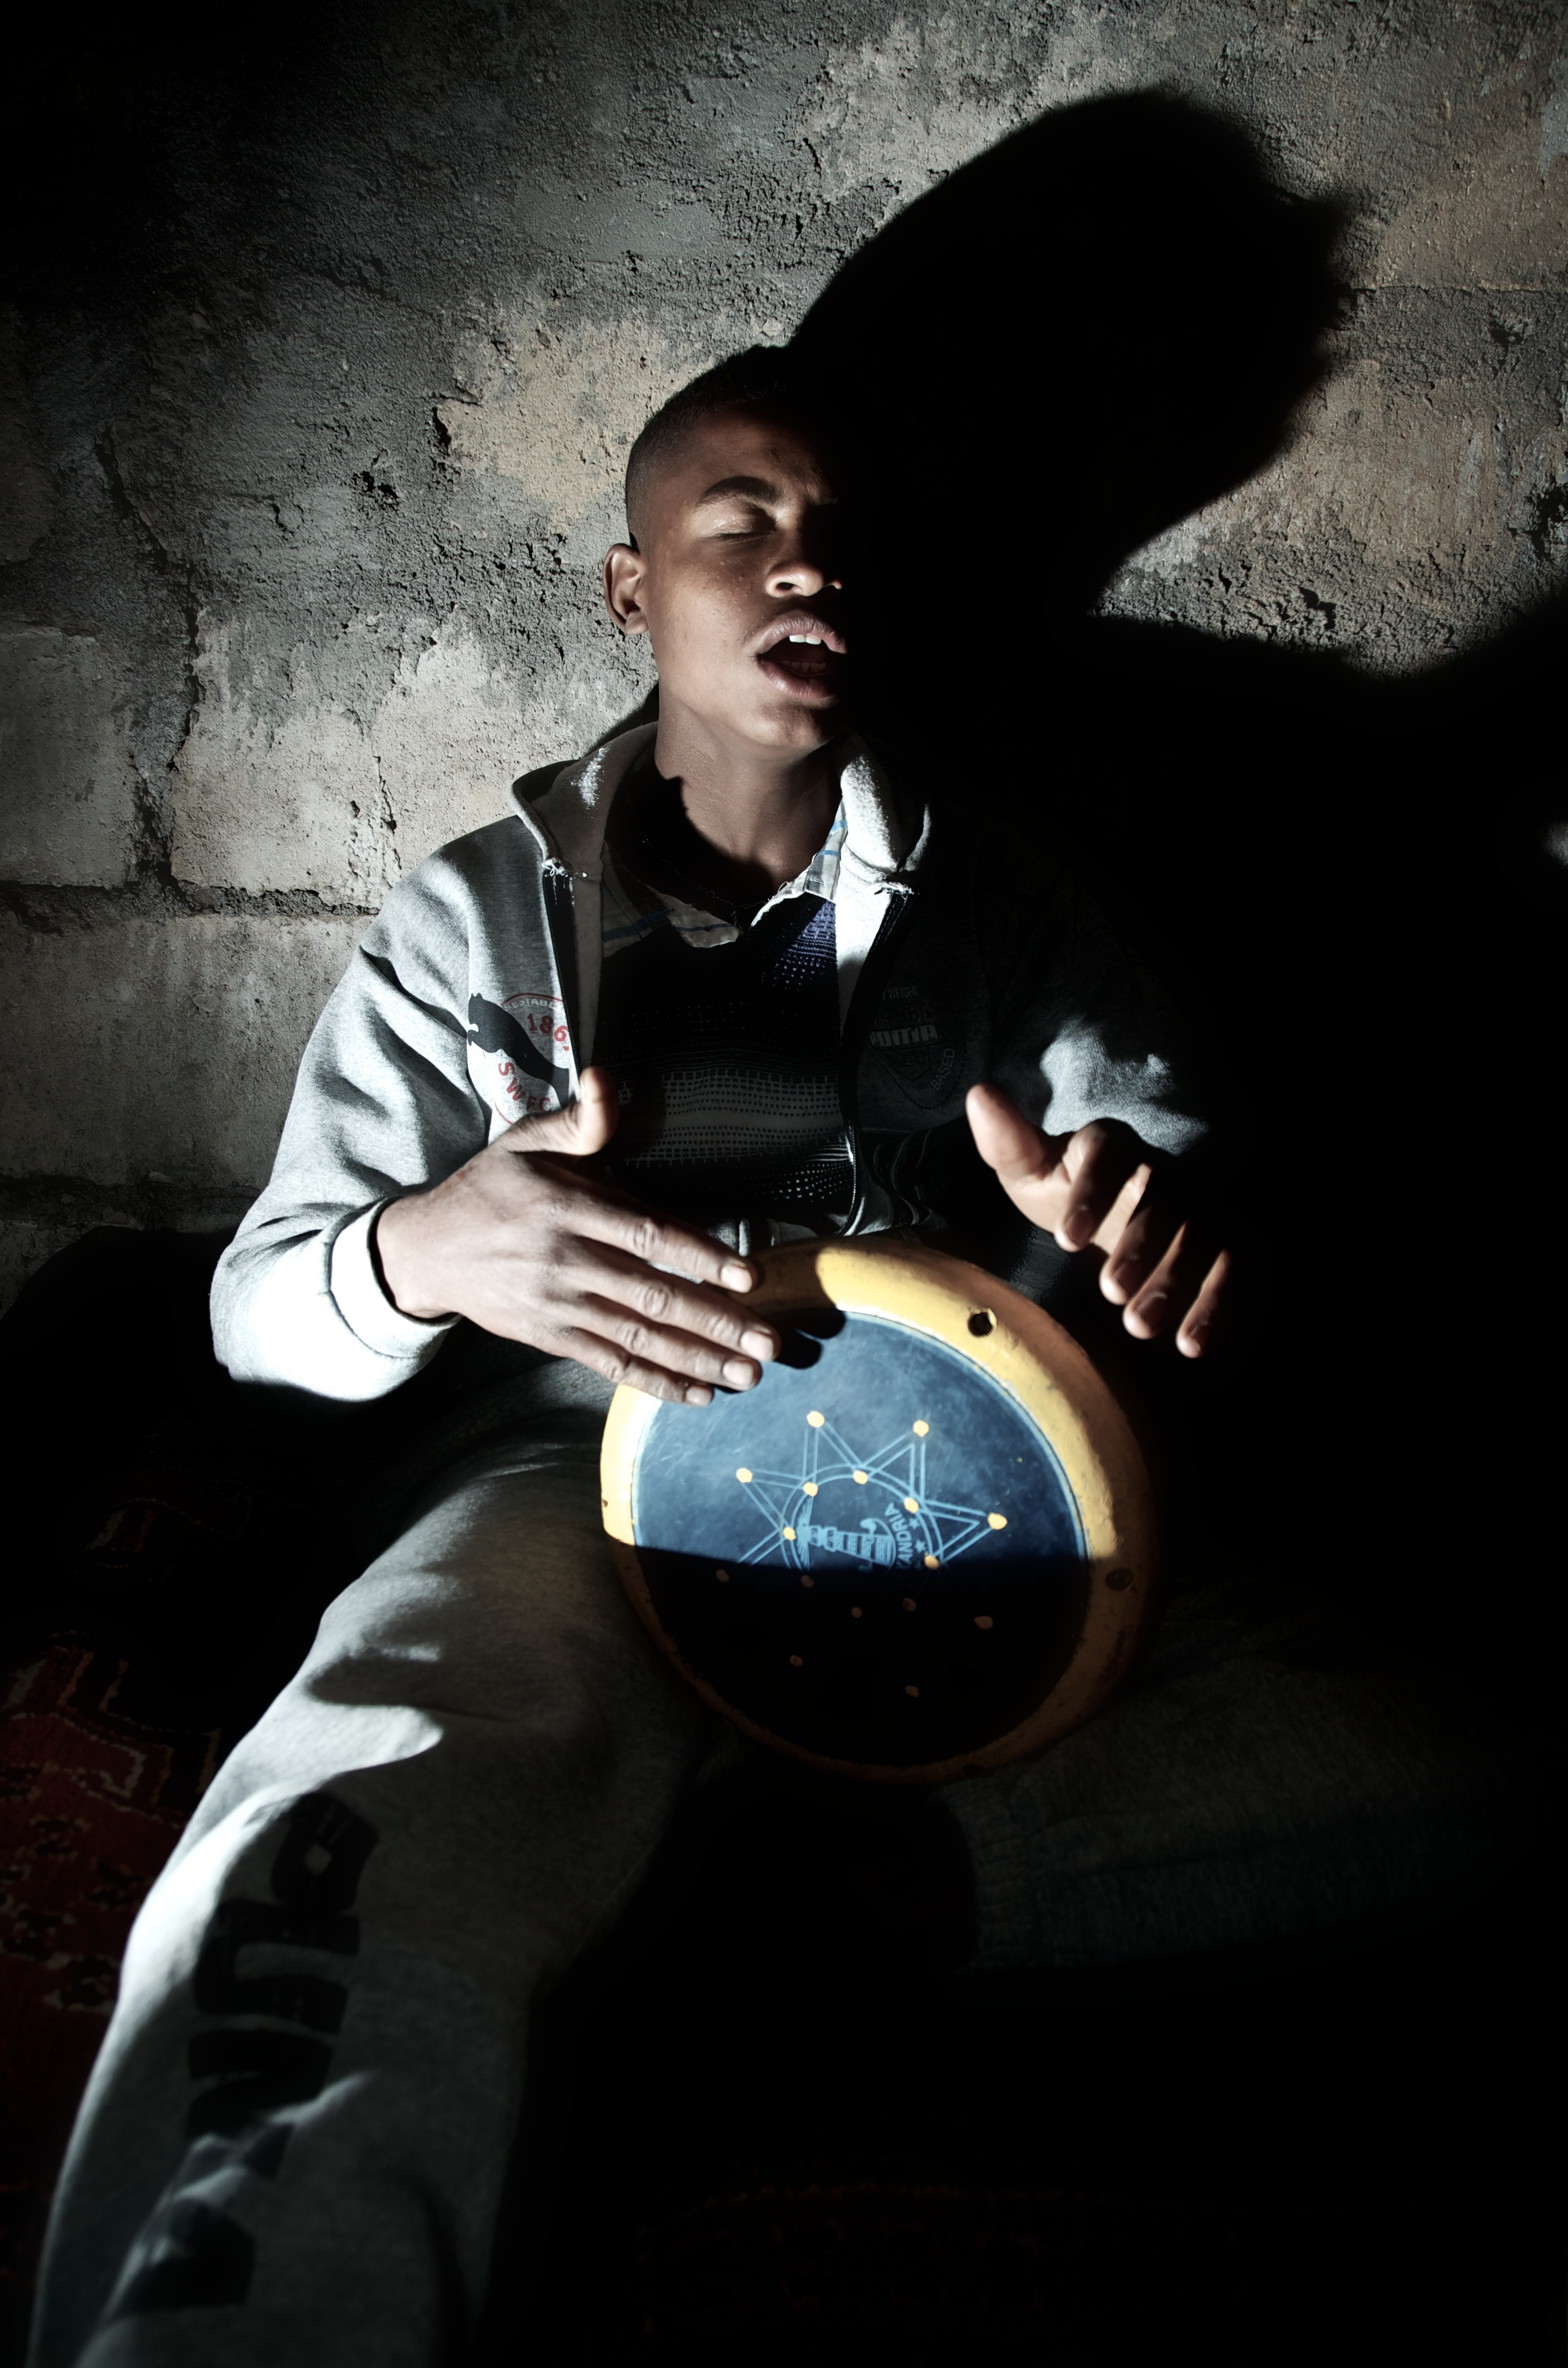 A man seated against a bare brick wall and playing a drum